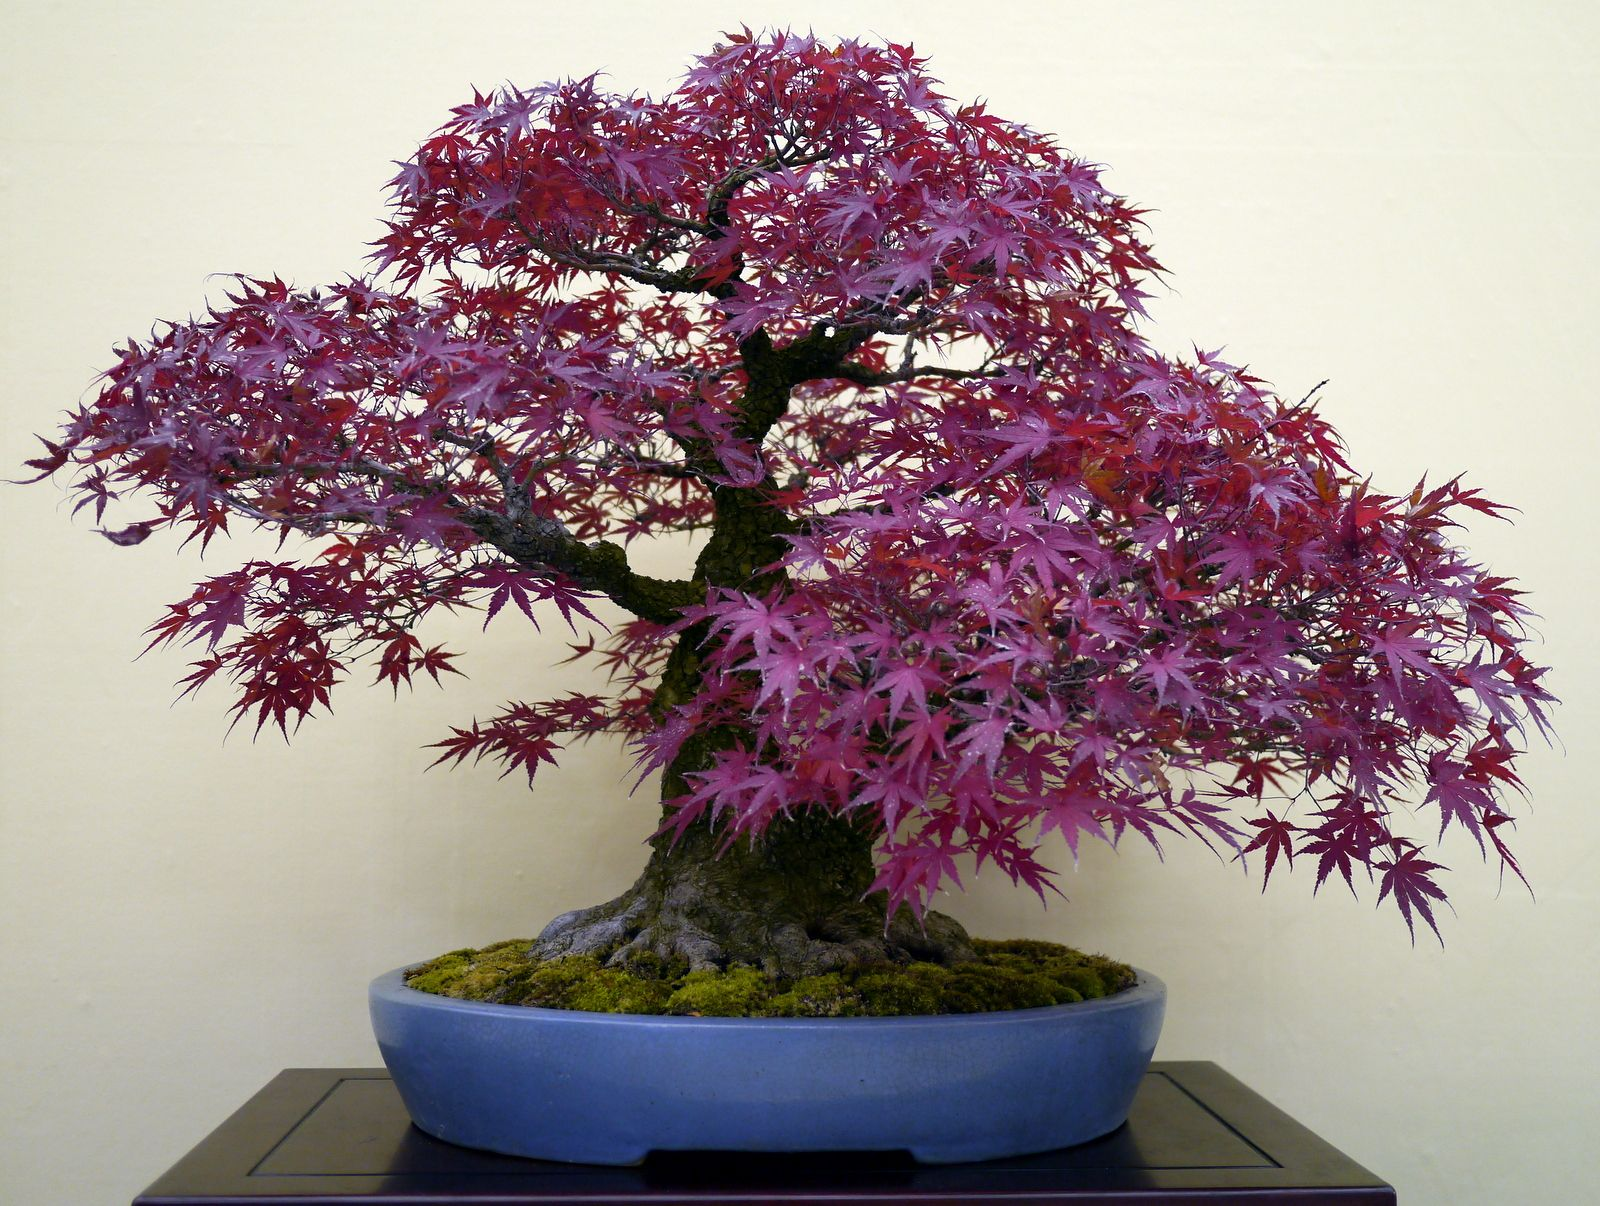 17 Eye Catching Bonsai Decoration Ideas For Indoors Top Inspirations Bonsai Tree Types Maple Tree Seeds Bonsai Tree Care